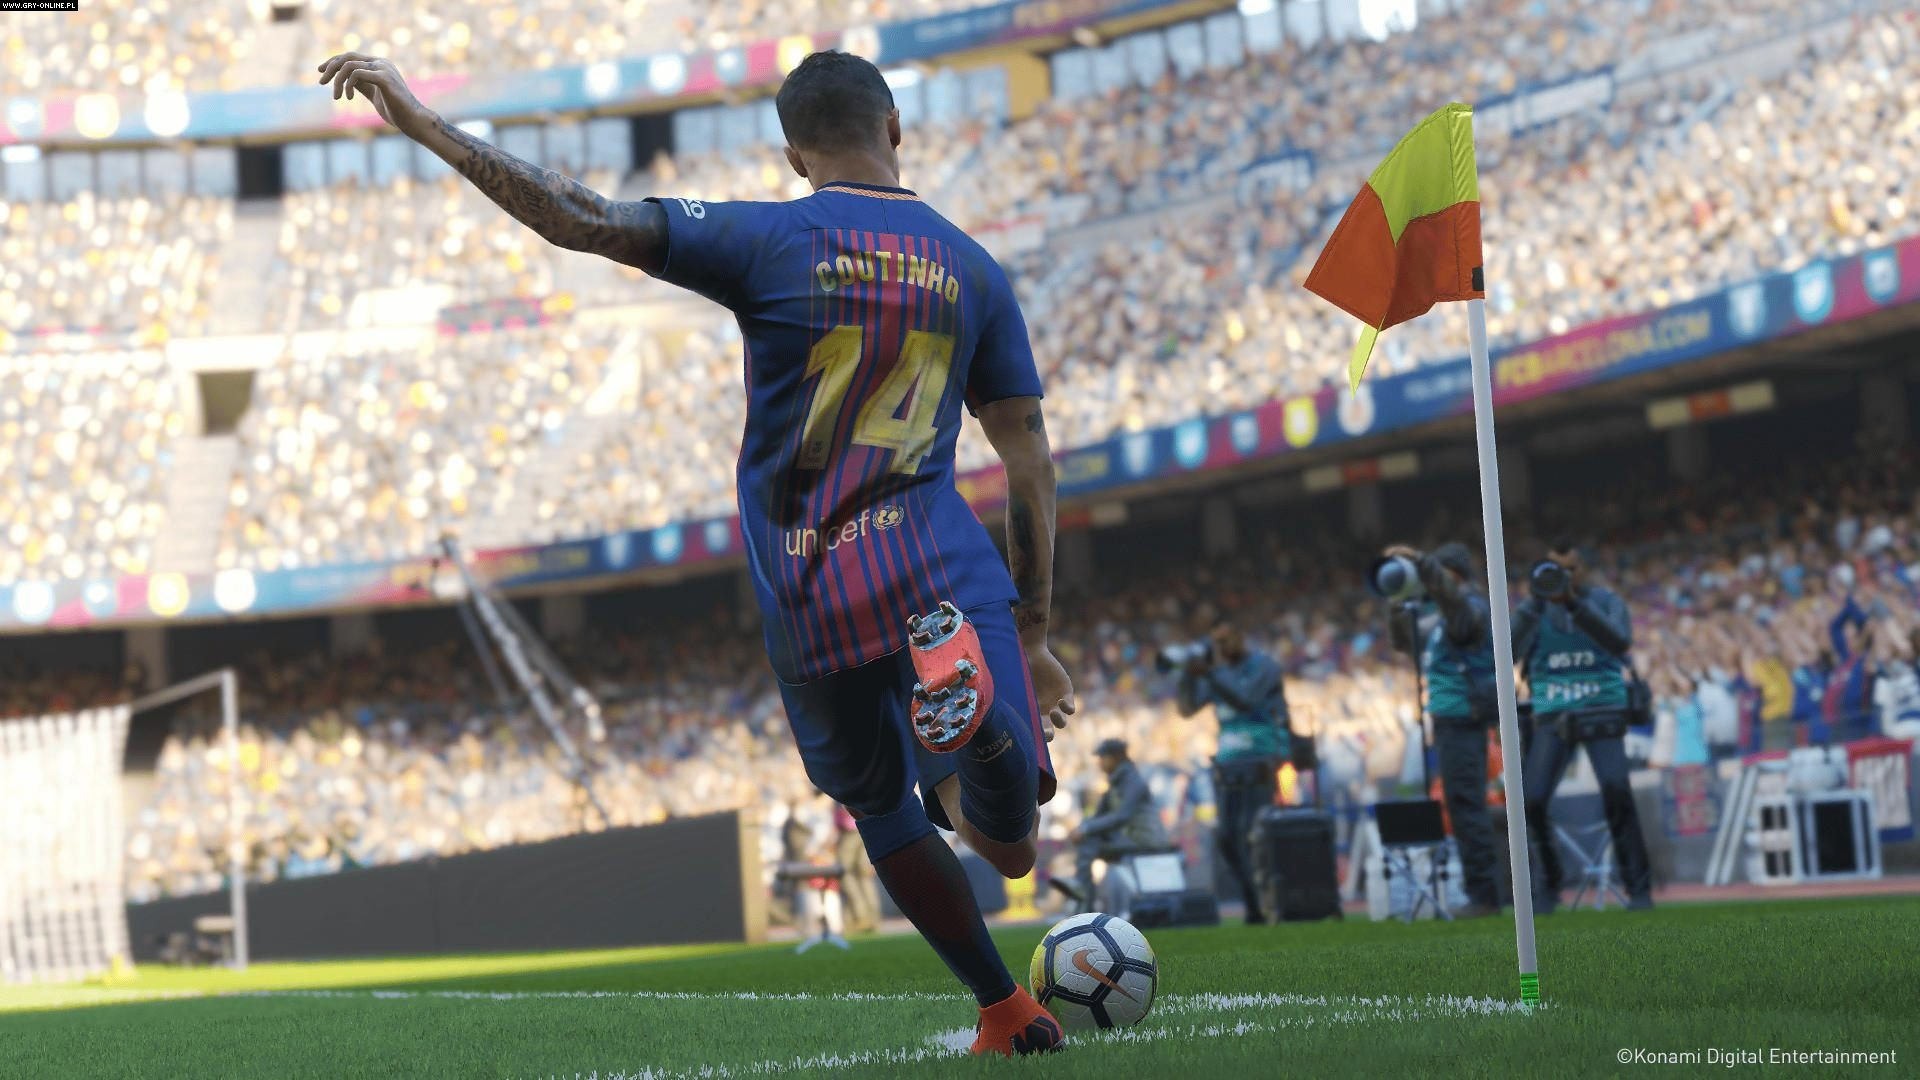 Pro Evolution Soccer 2019 PC, PS4, XONE Games Image 10/11, Konami